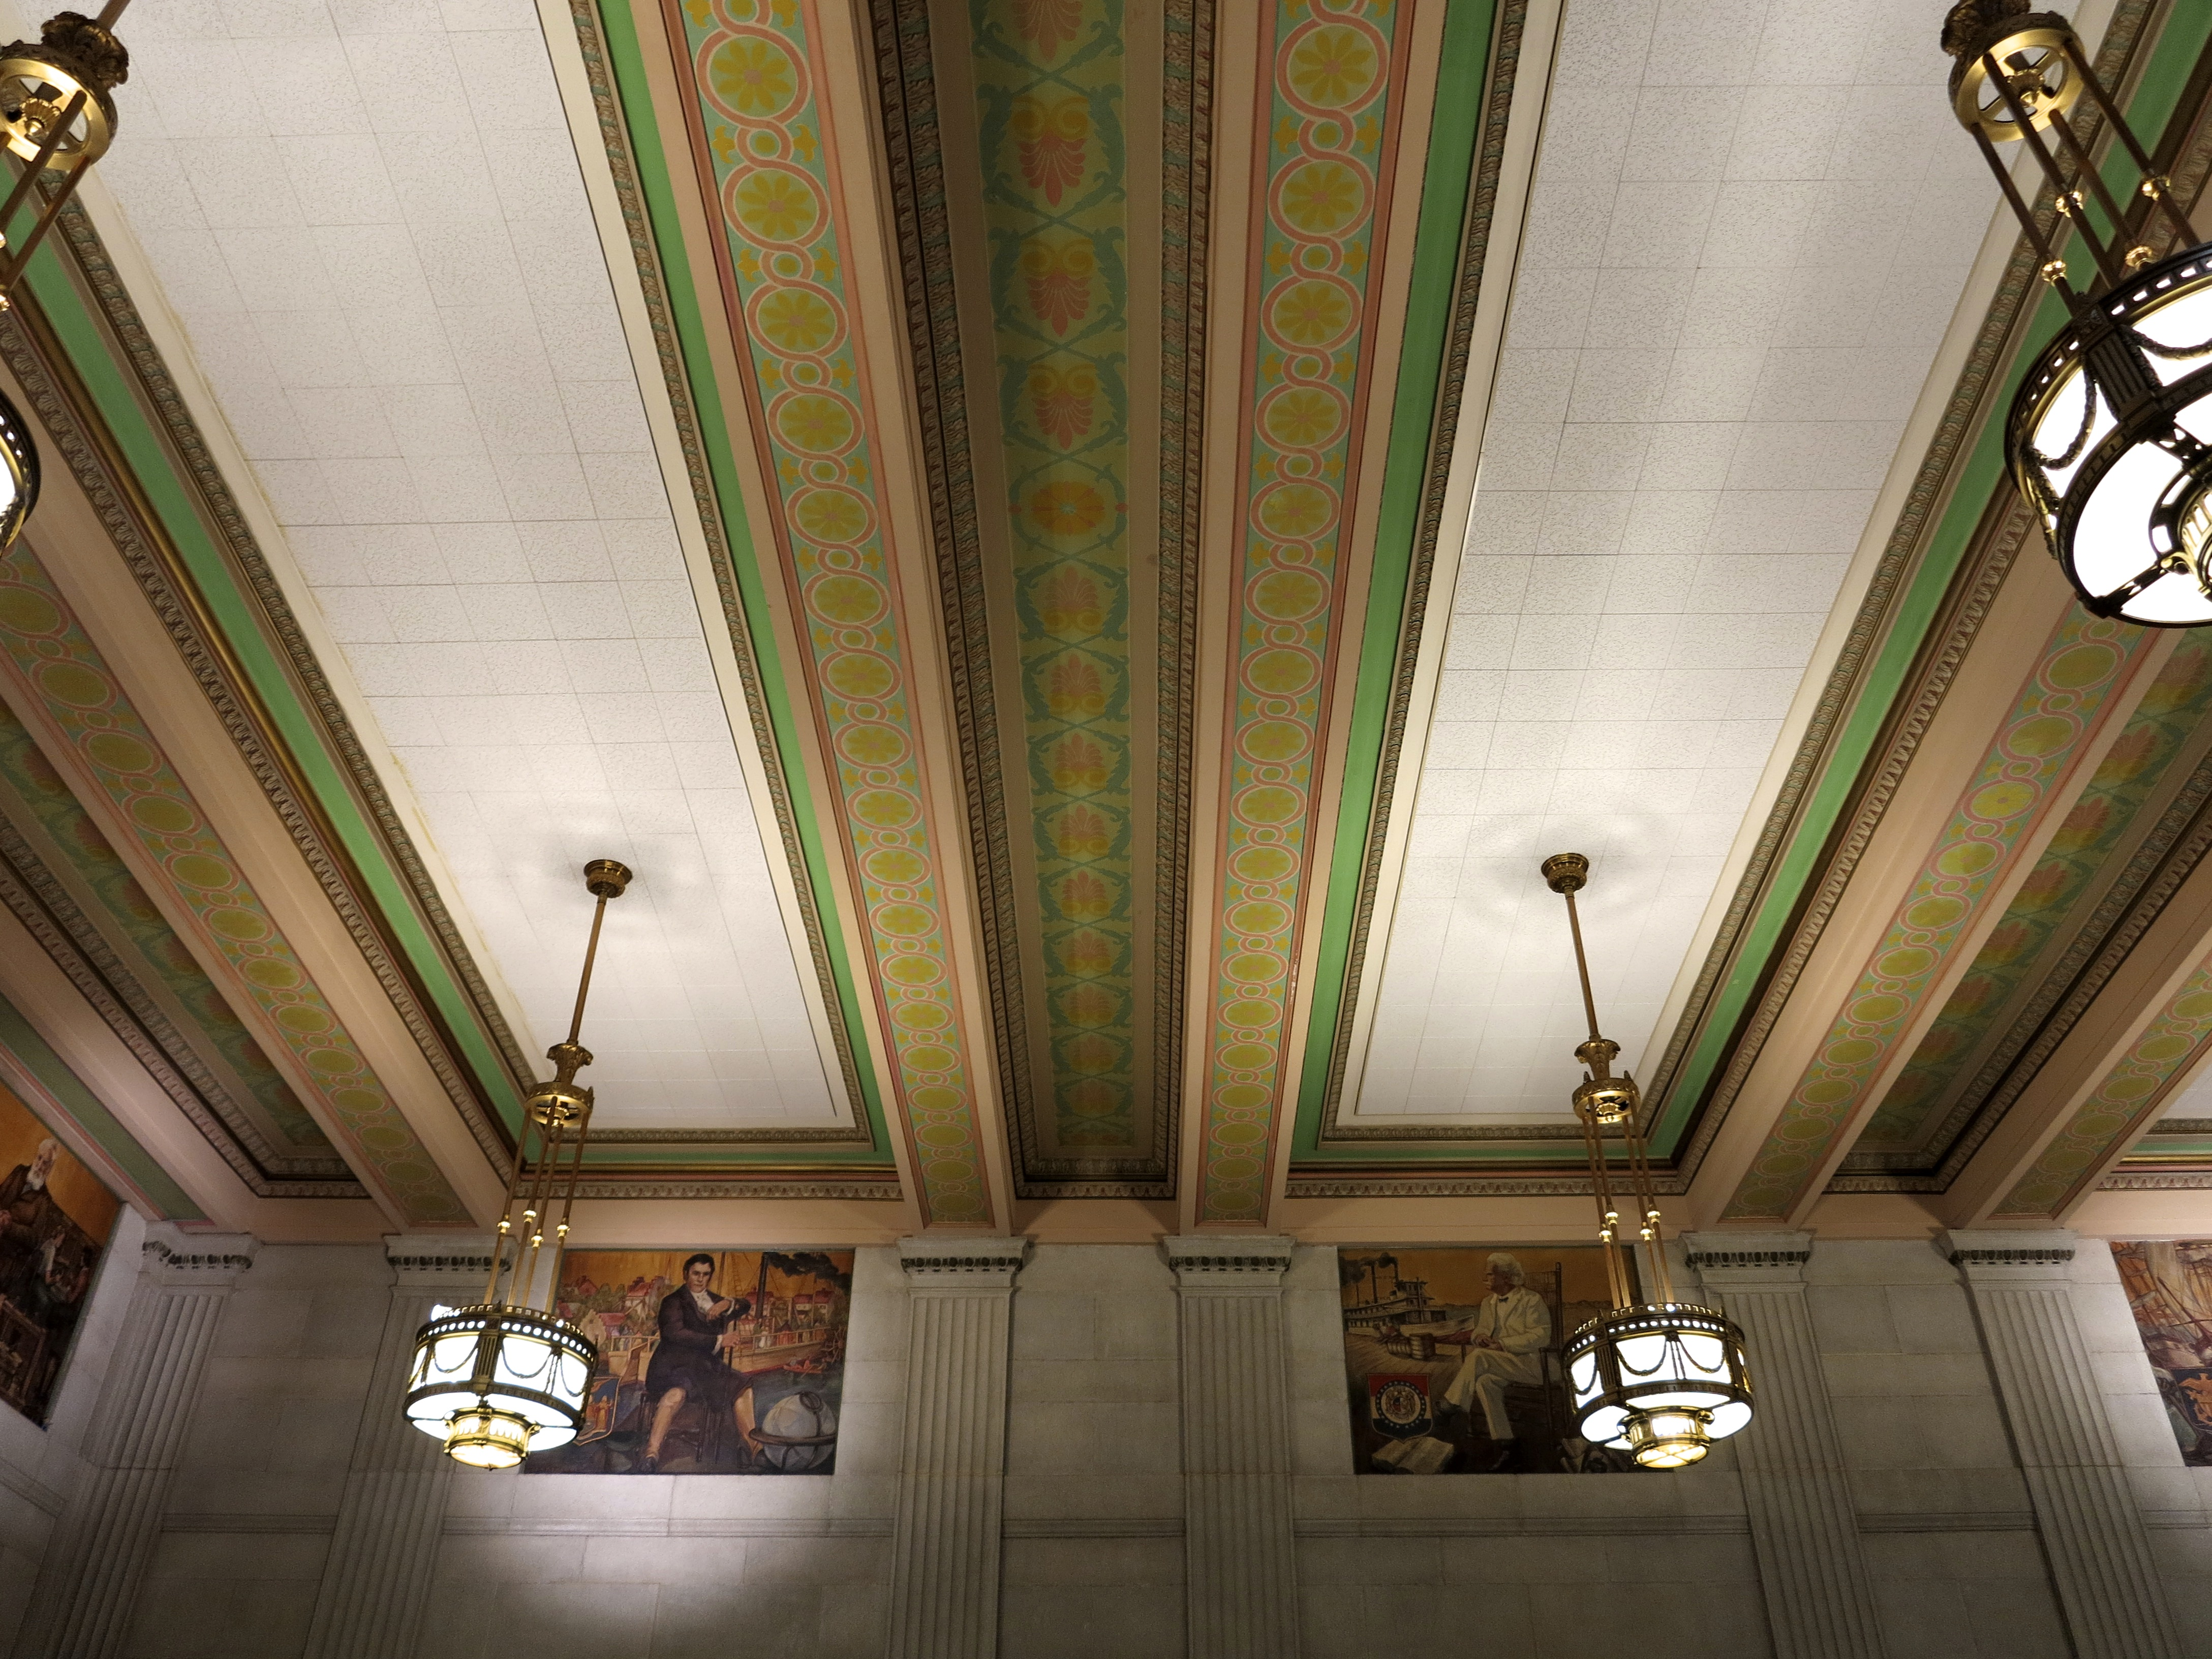 West Waiting Room murals depict important figures in American history.